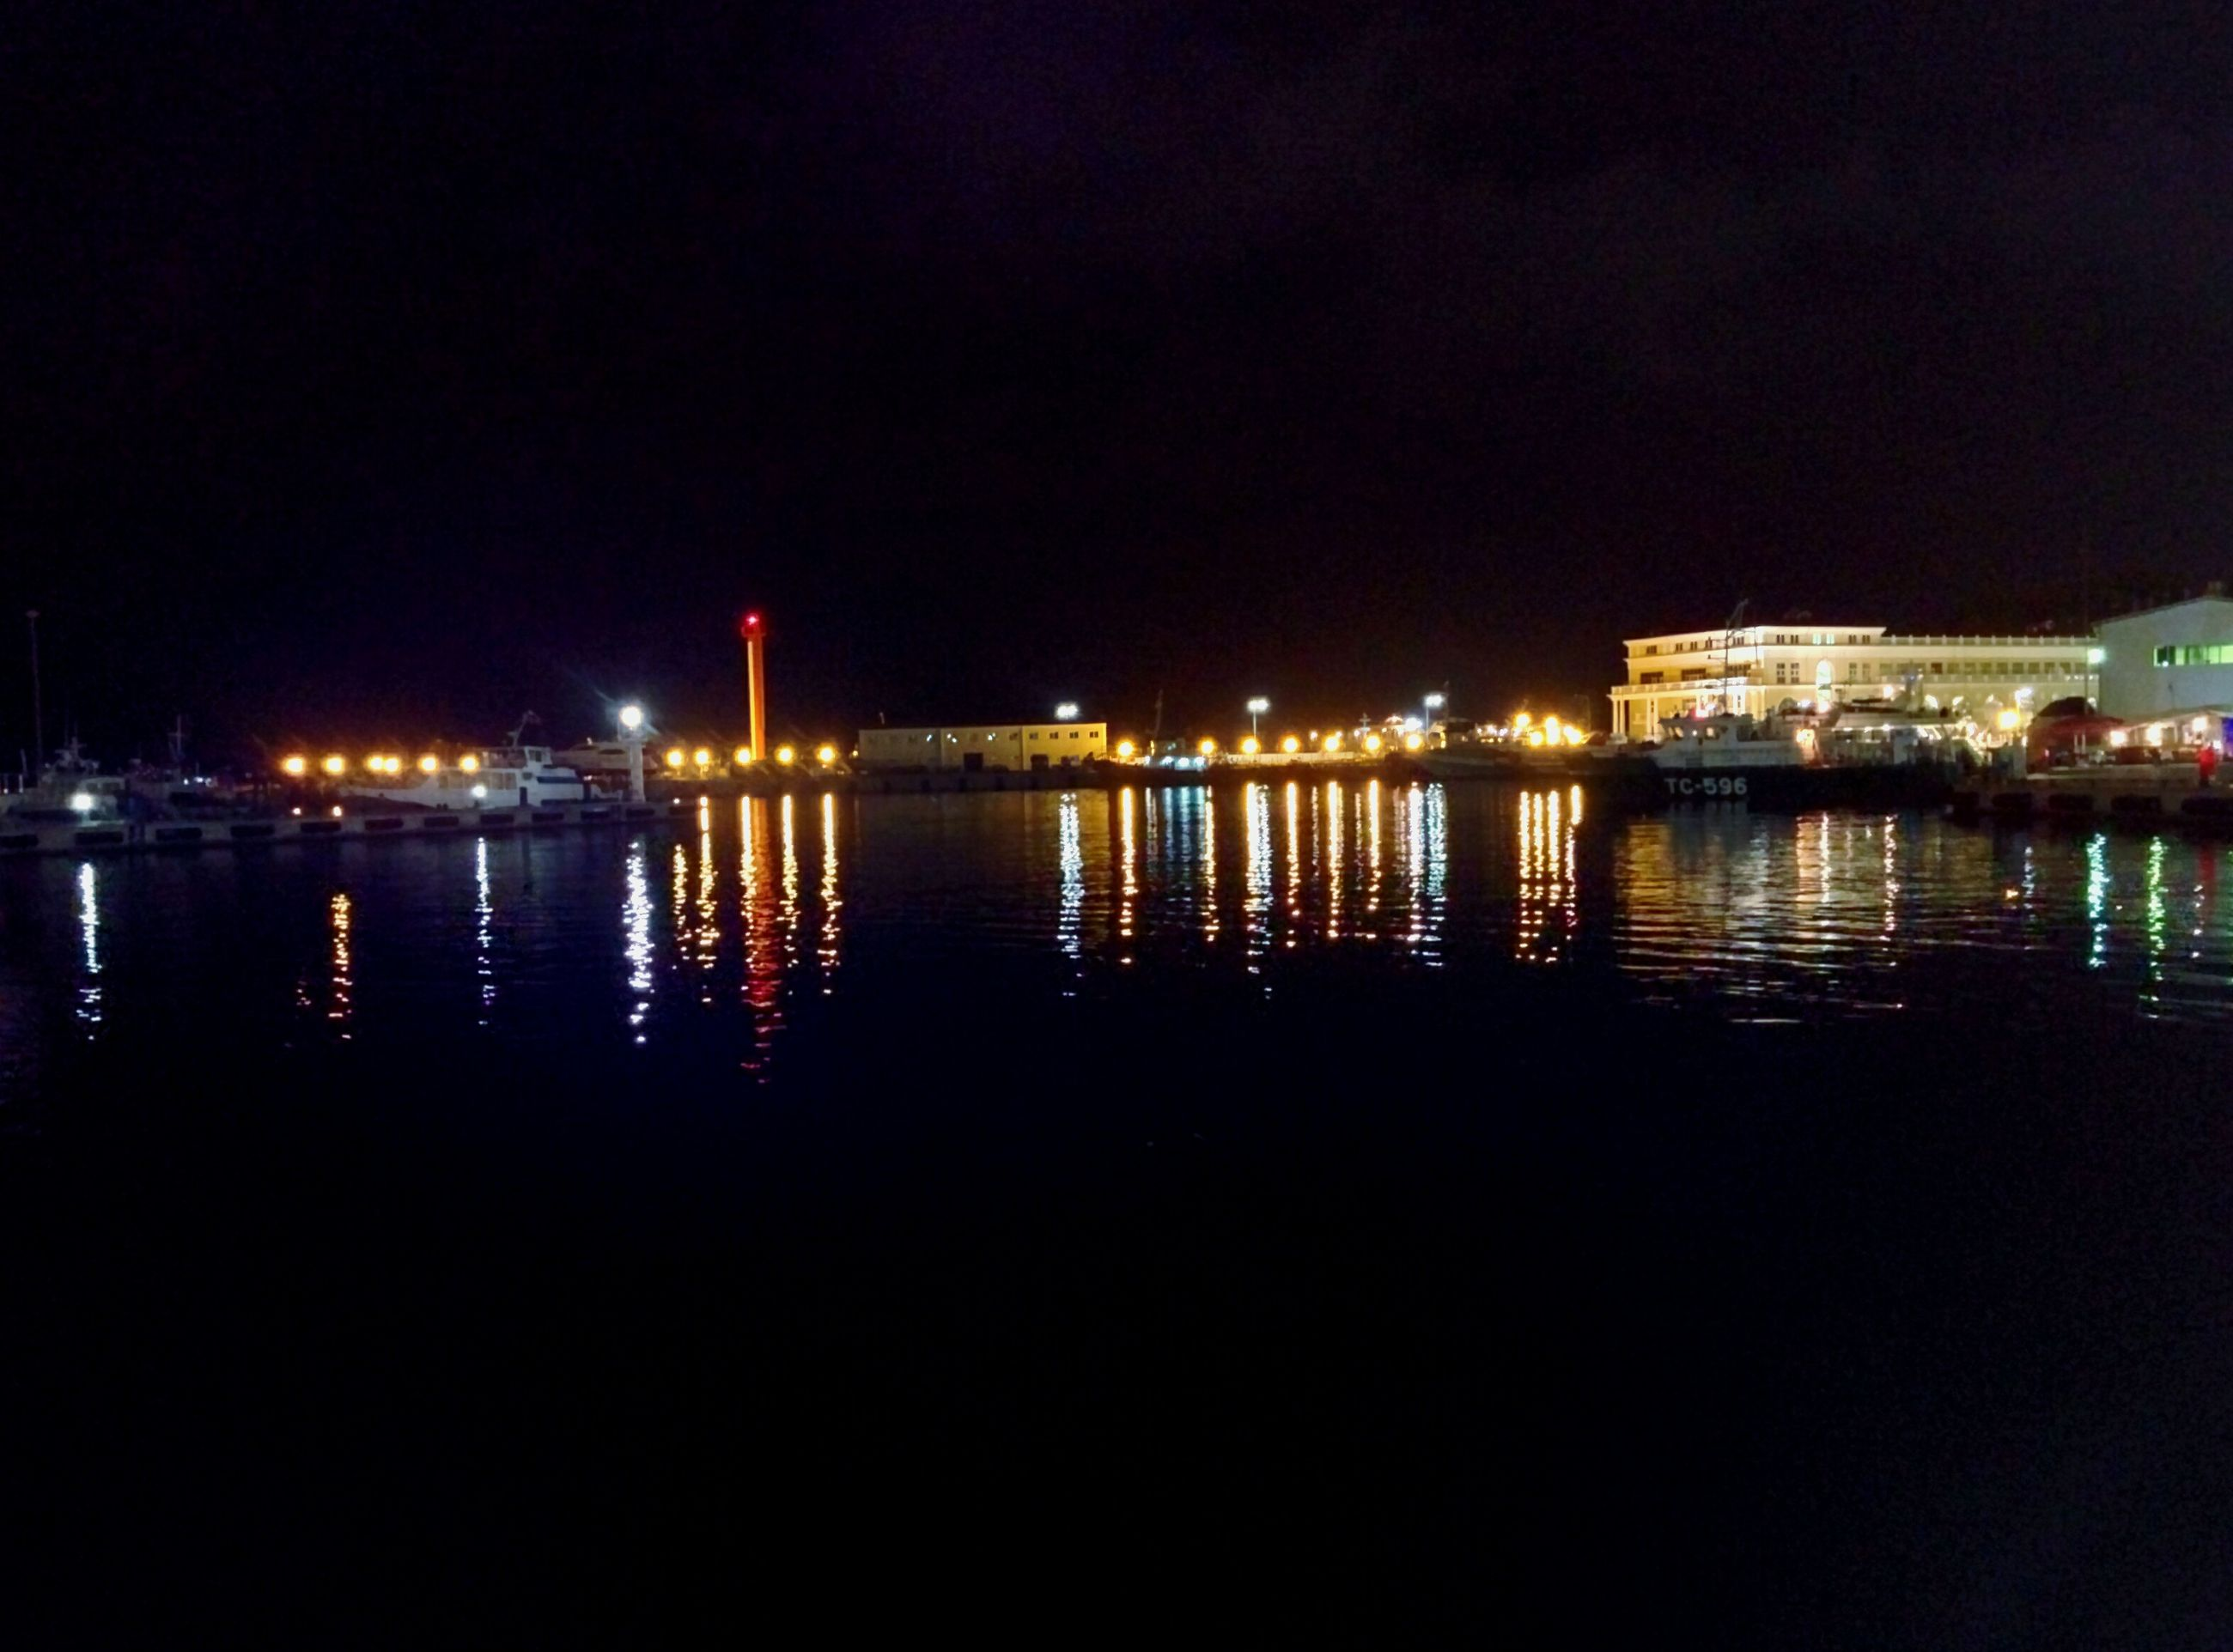 illuminated, night, water, reflection, waterfront, built structure, architecture, river, building exterior, city, sea, copy space, clear sky, sky, lake, mid distance, dark, nautical vessel, outdoors, no people